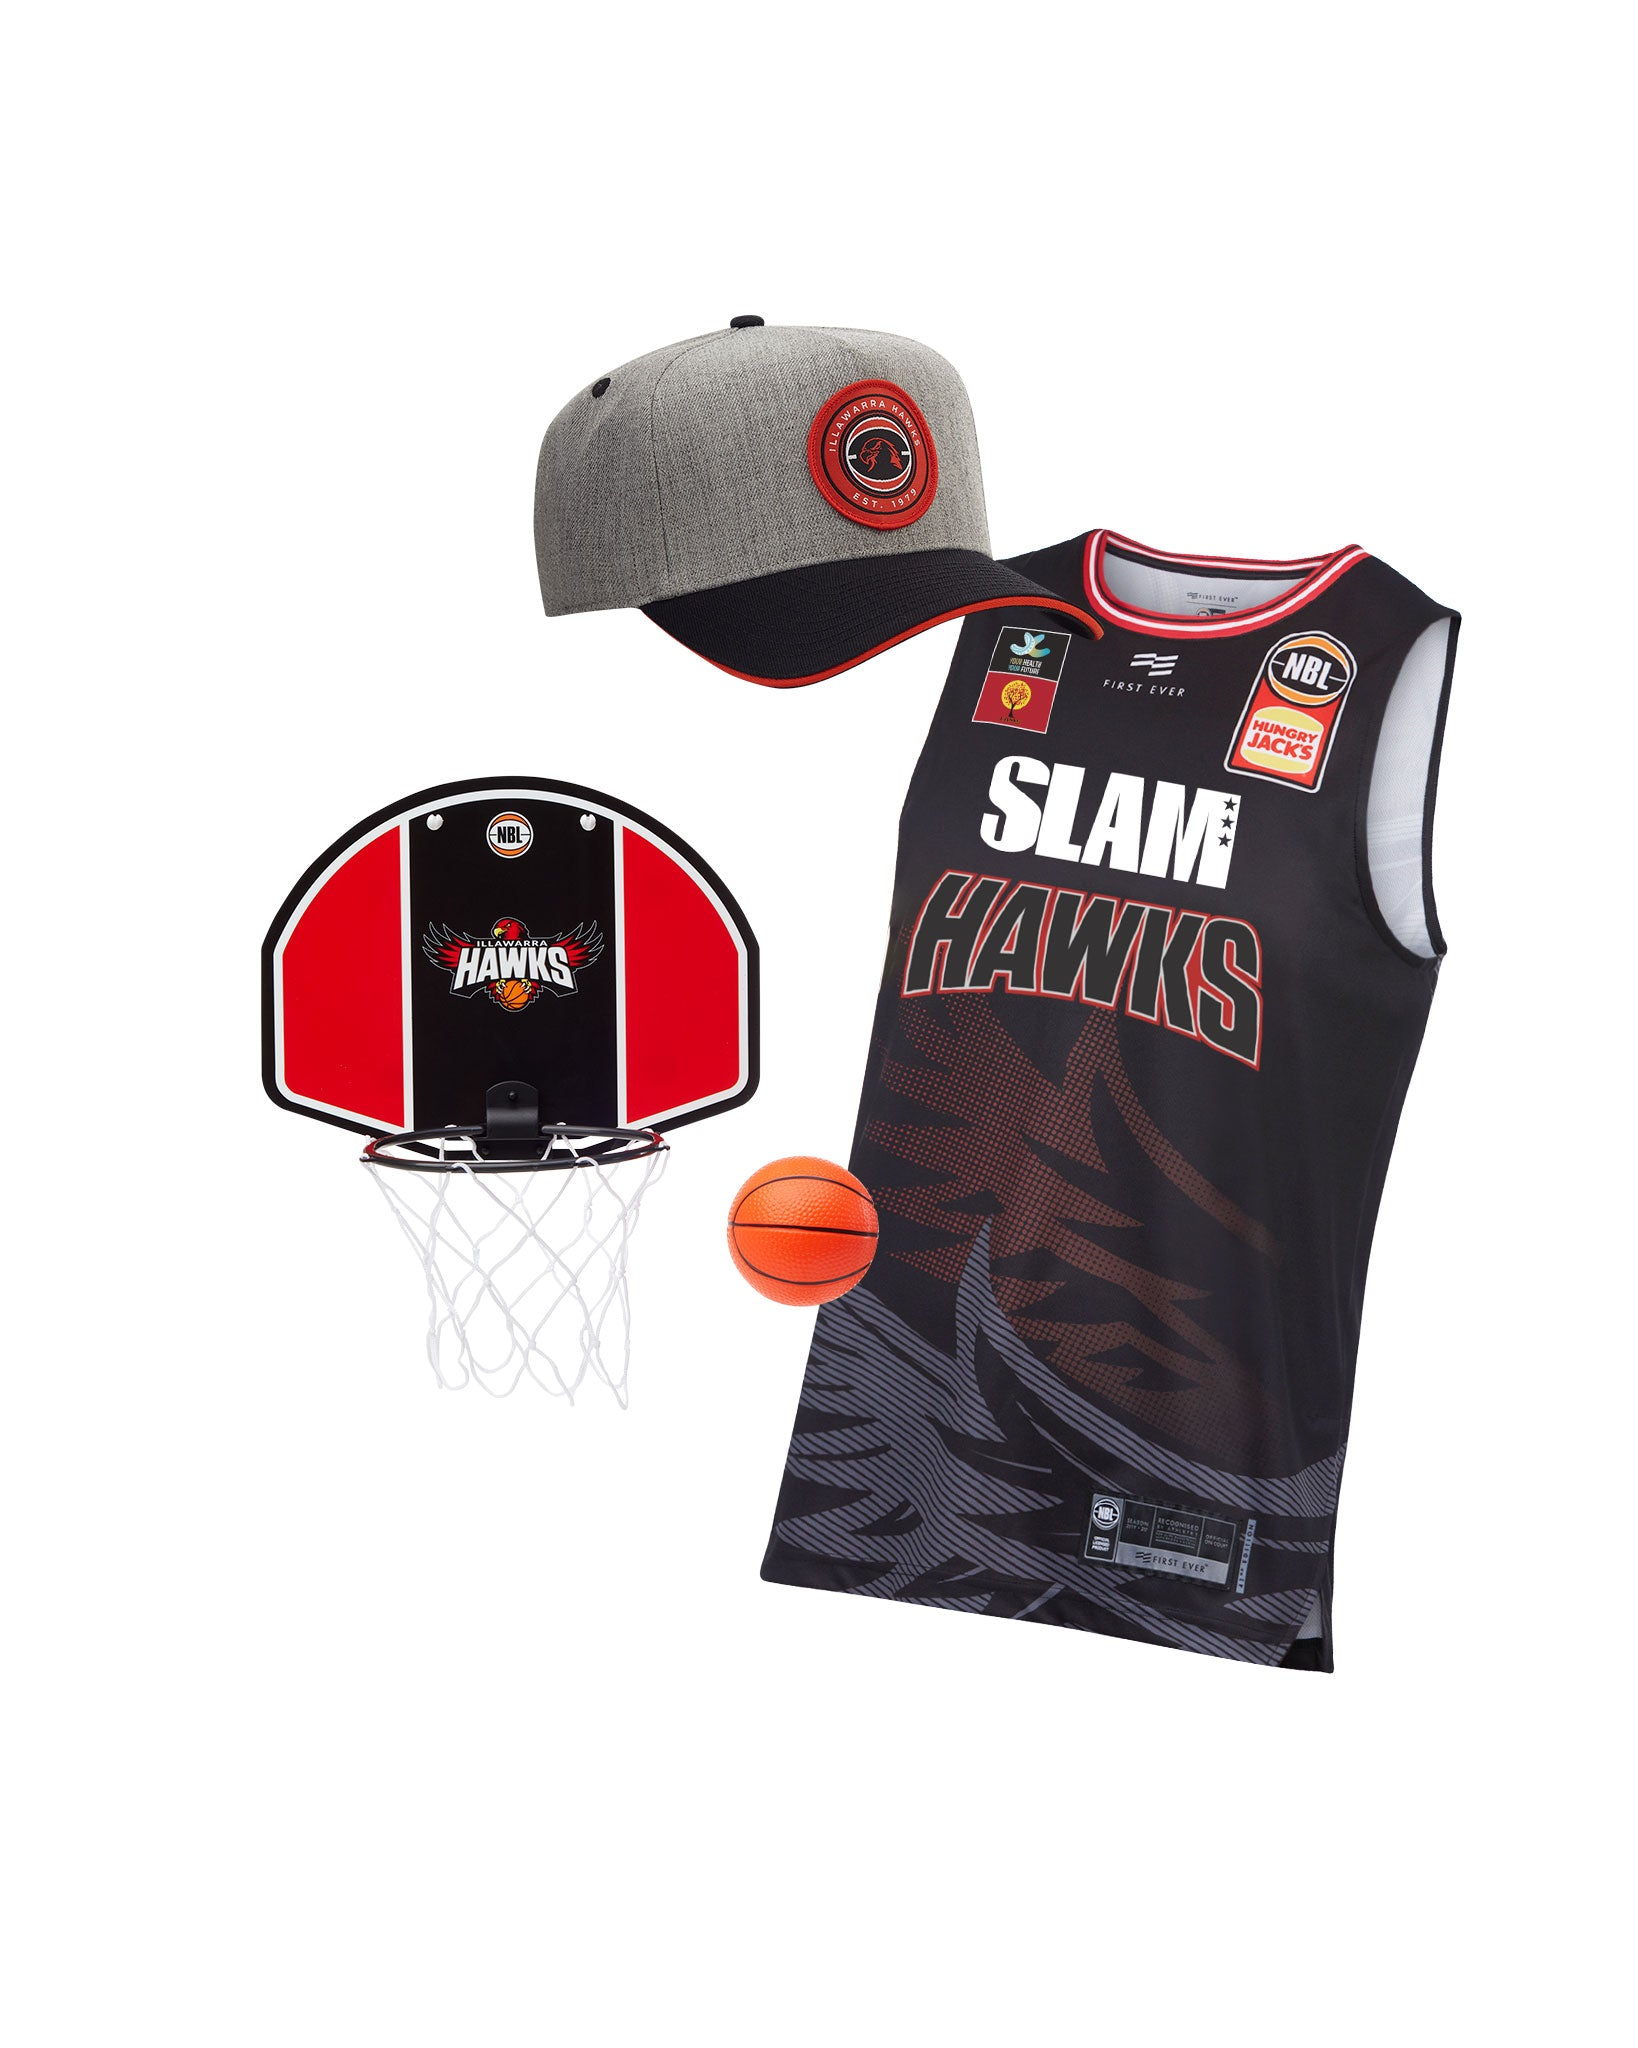 Illawarra Hawks 19/20 Dunks & Chill Bundle